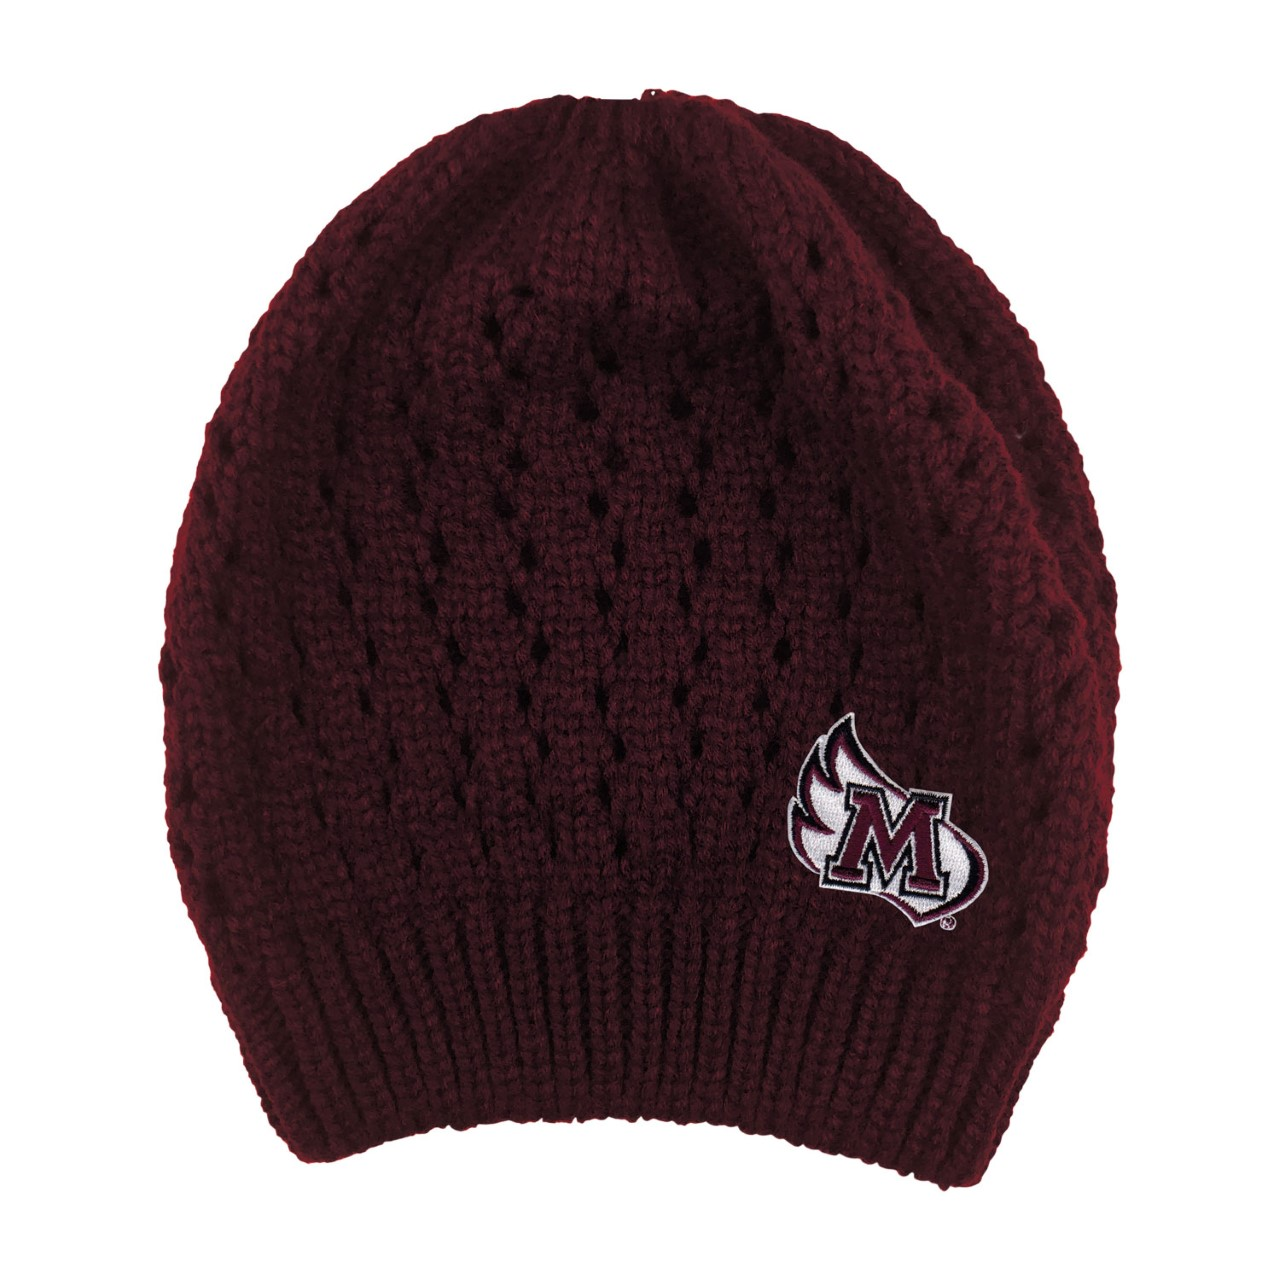 Image for the Open Knit Hat w/ Bun Opening, Burgundy product